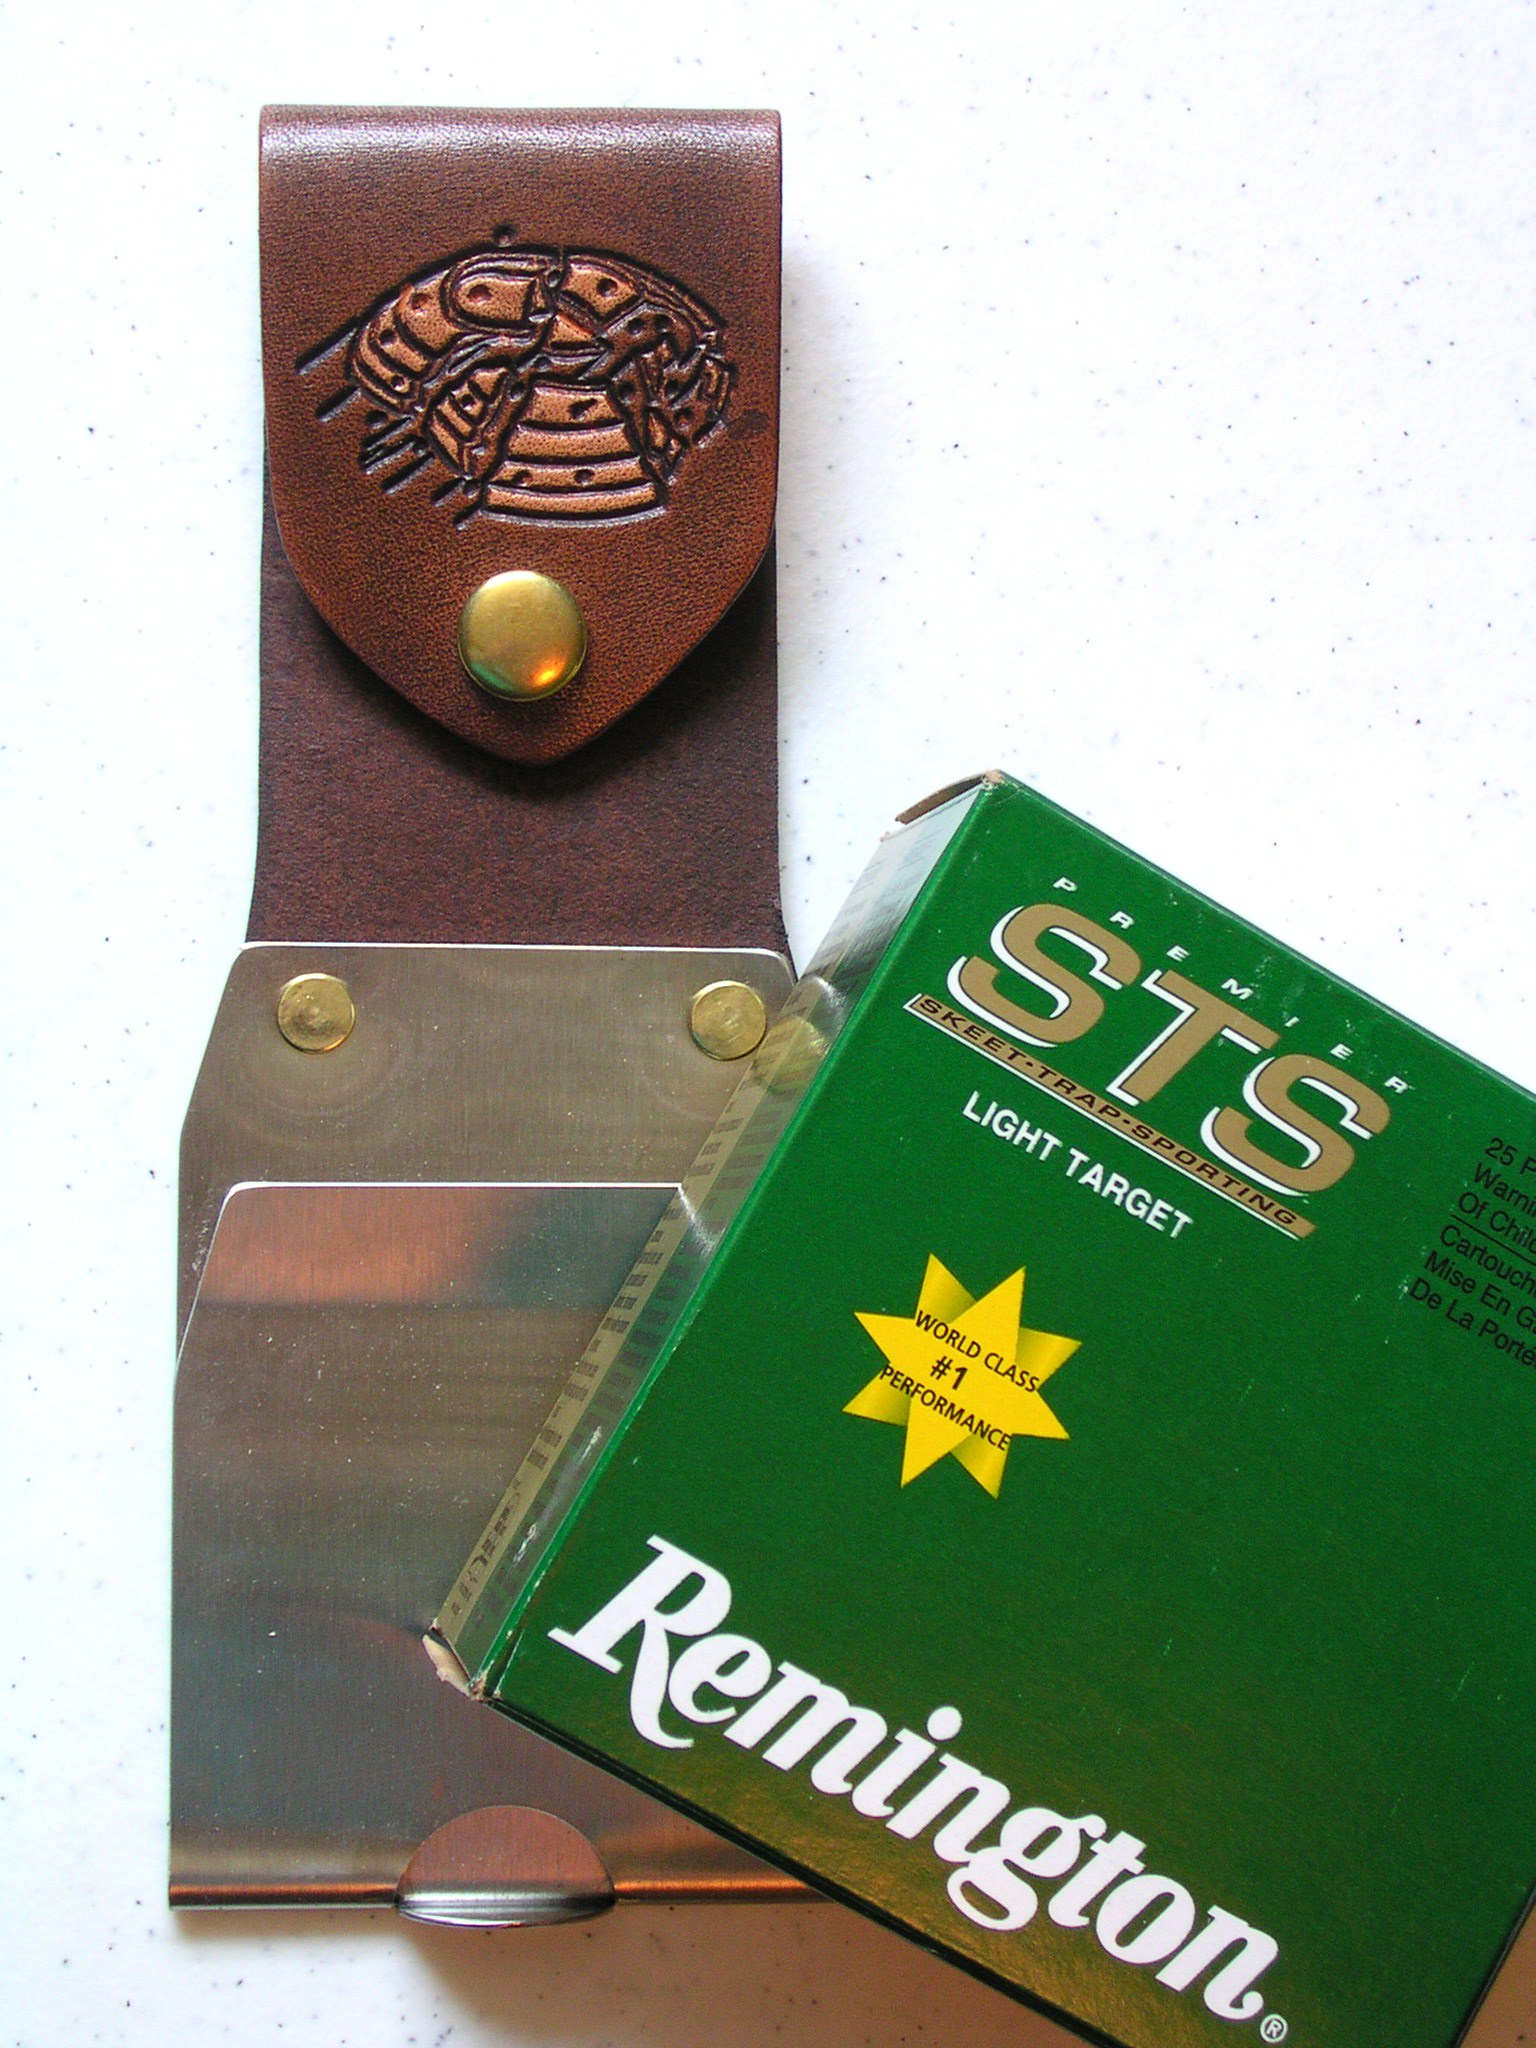 Shamrock Leathers 1-Box Clip Leather shotshell box holder, 1-box carrier, metal clip